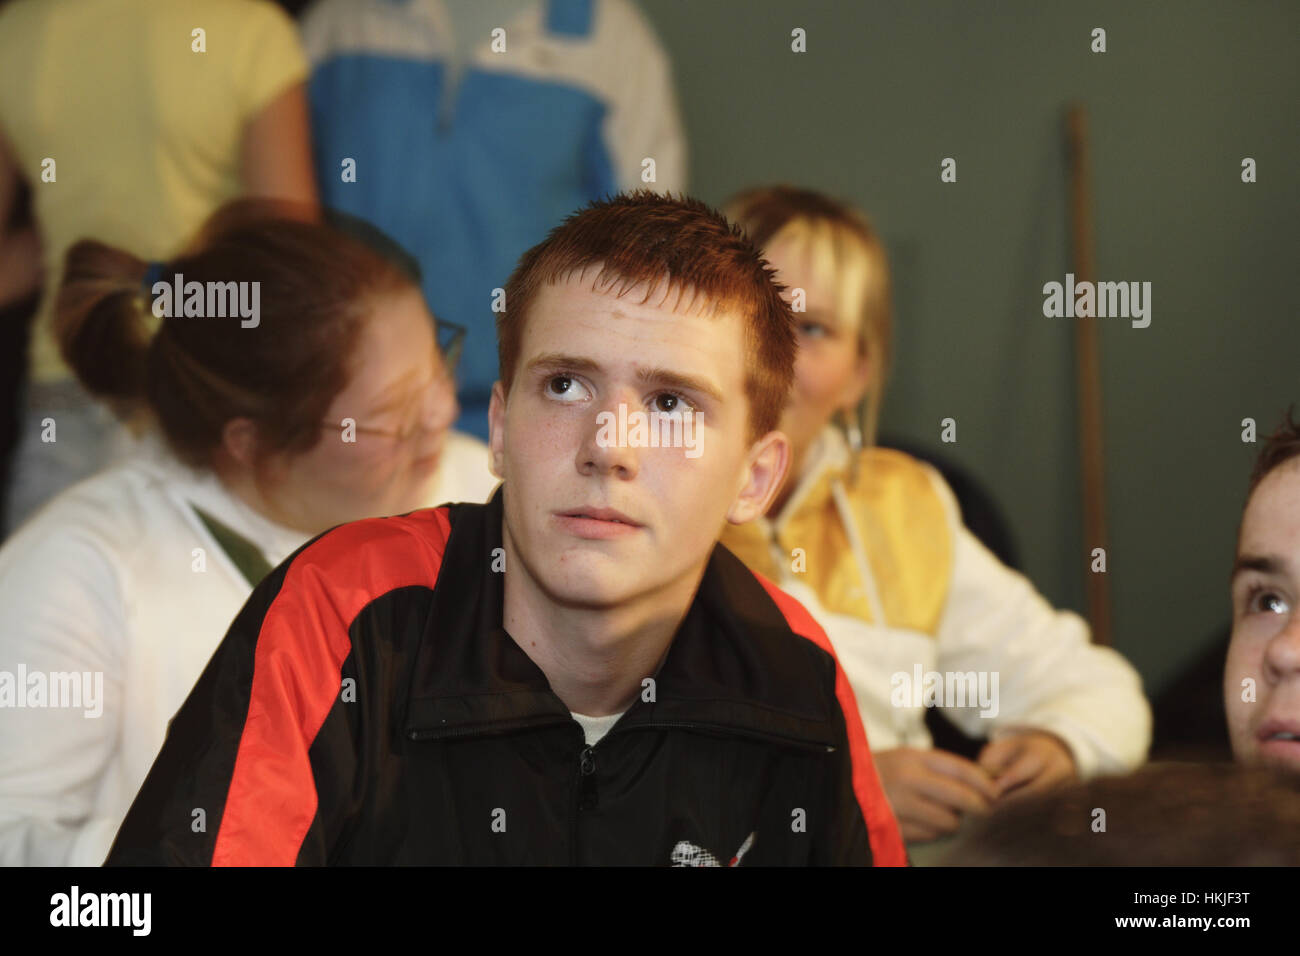 Youth in Castlemilk watch a TV programme about offending, crime and punishment Stock Photo